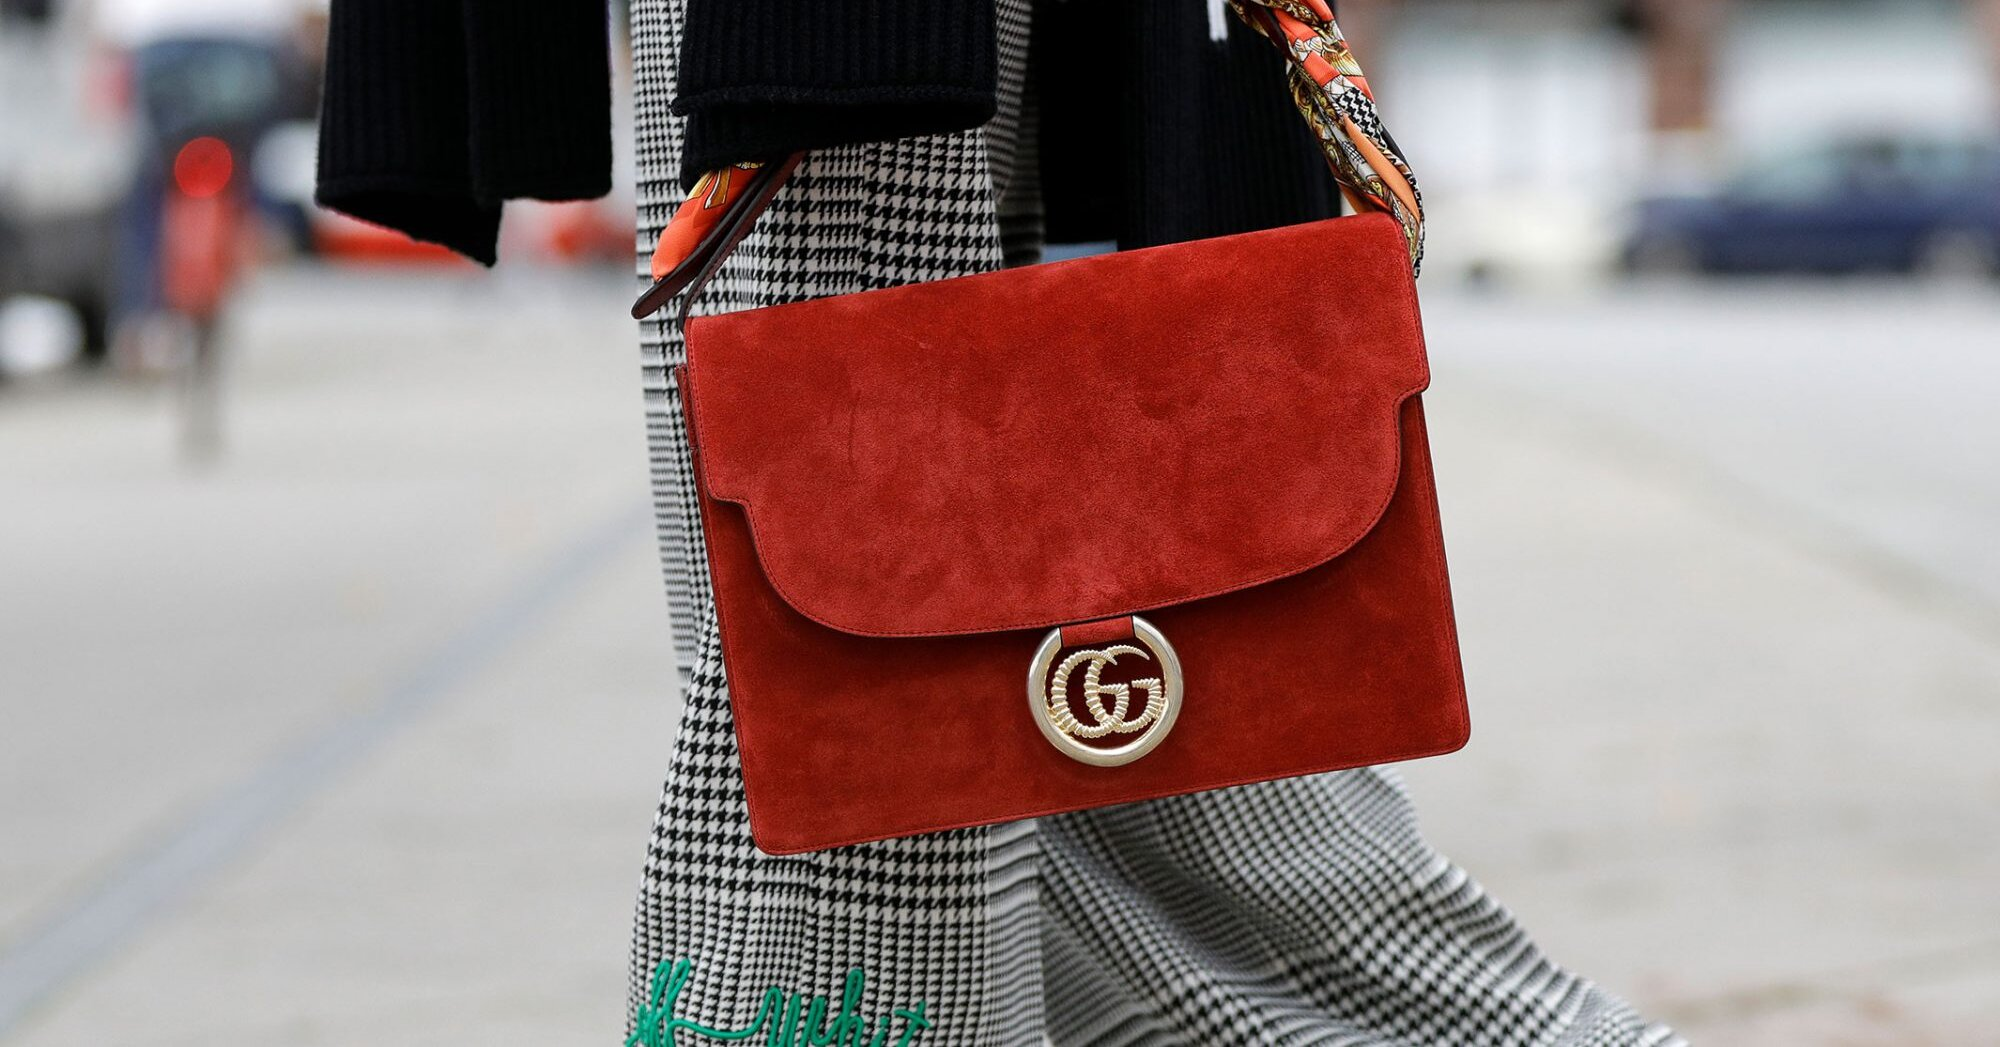 Designer Bags That Never Get Discounted Are Hundreds of Dollars Off at This Secret Sale